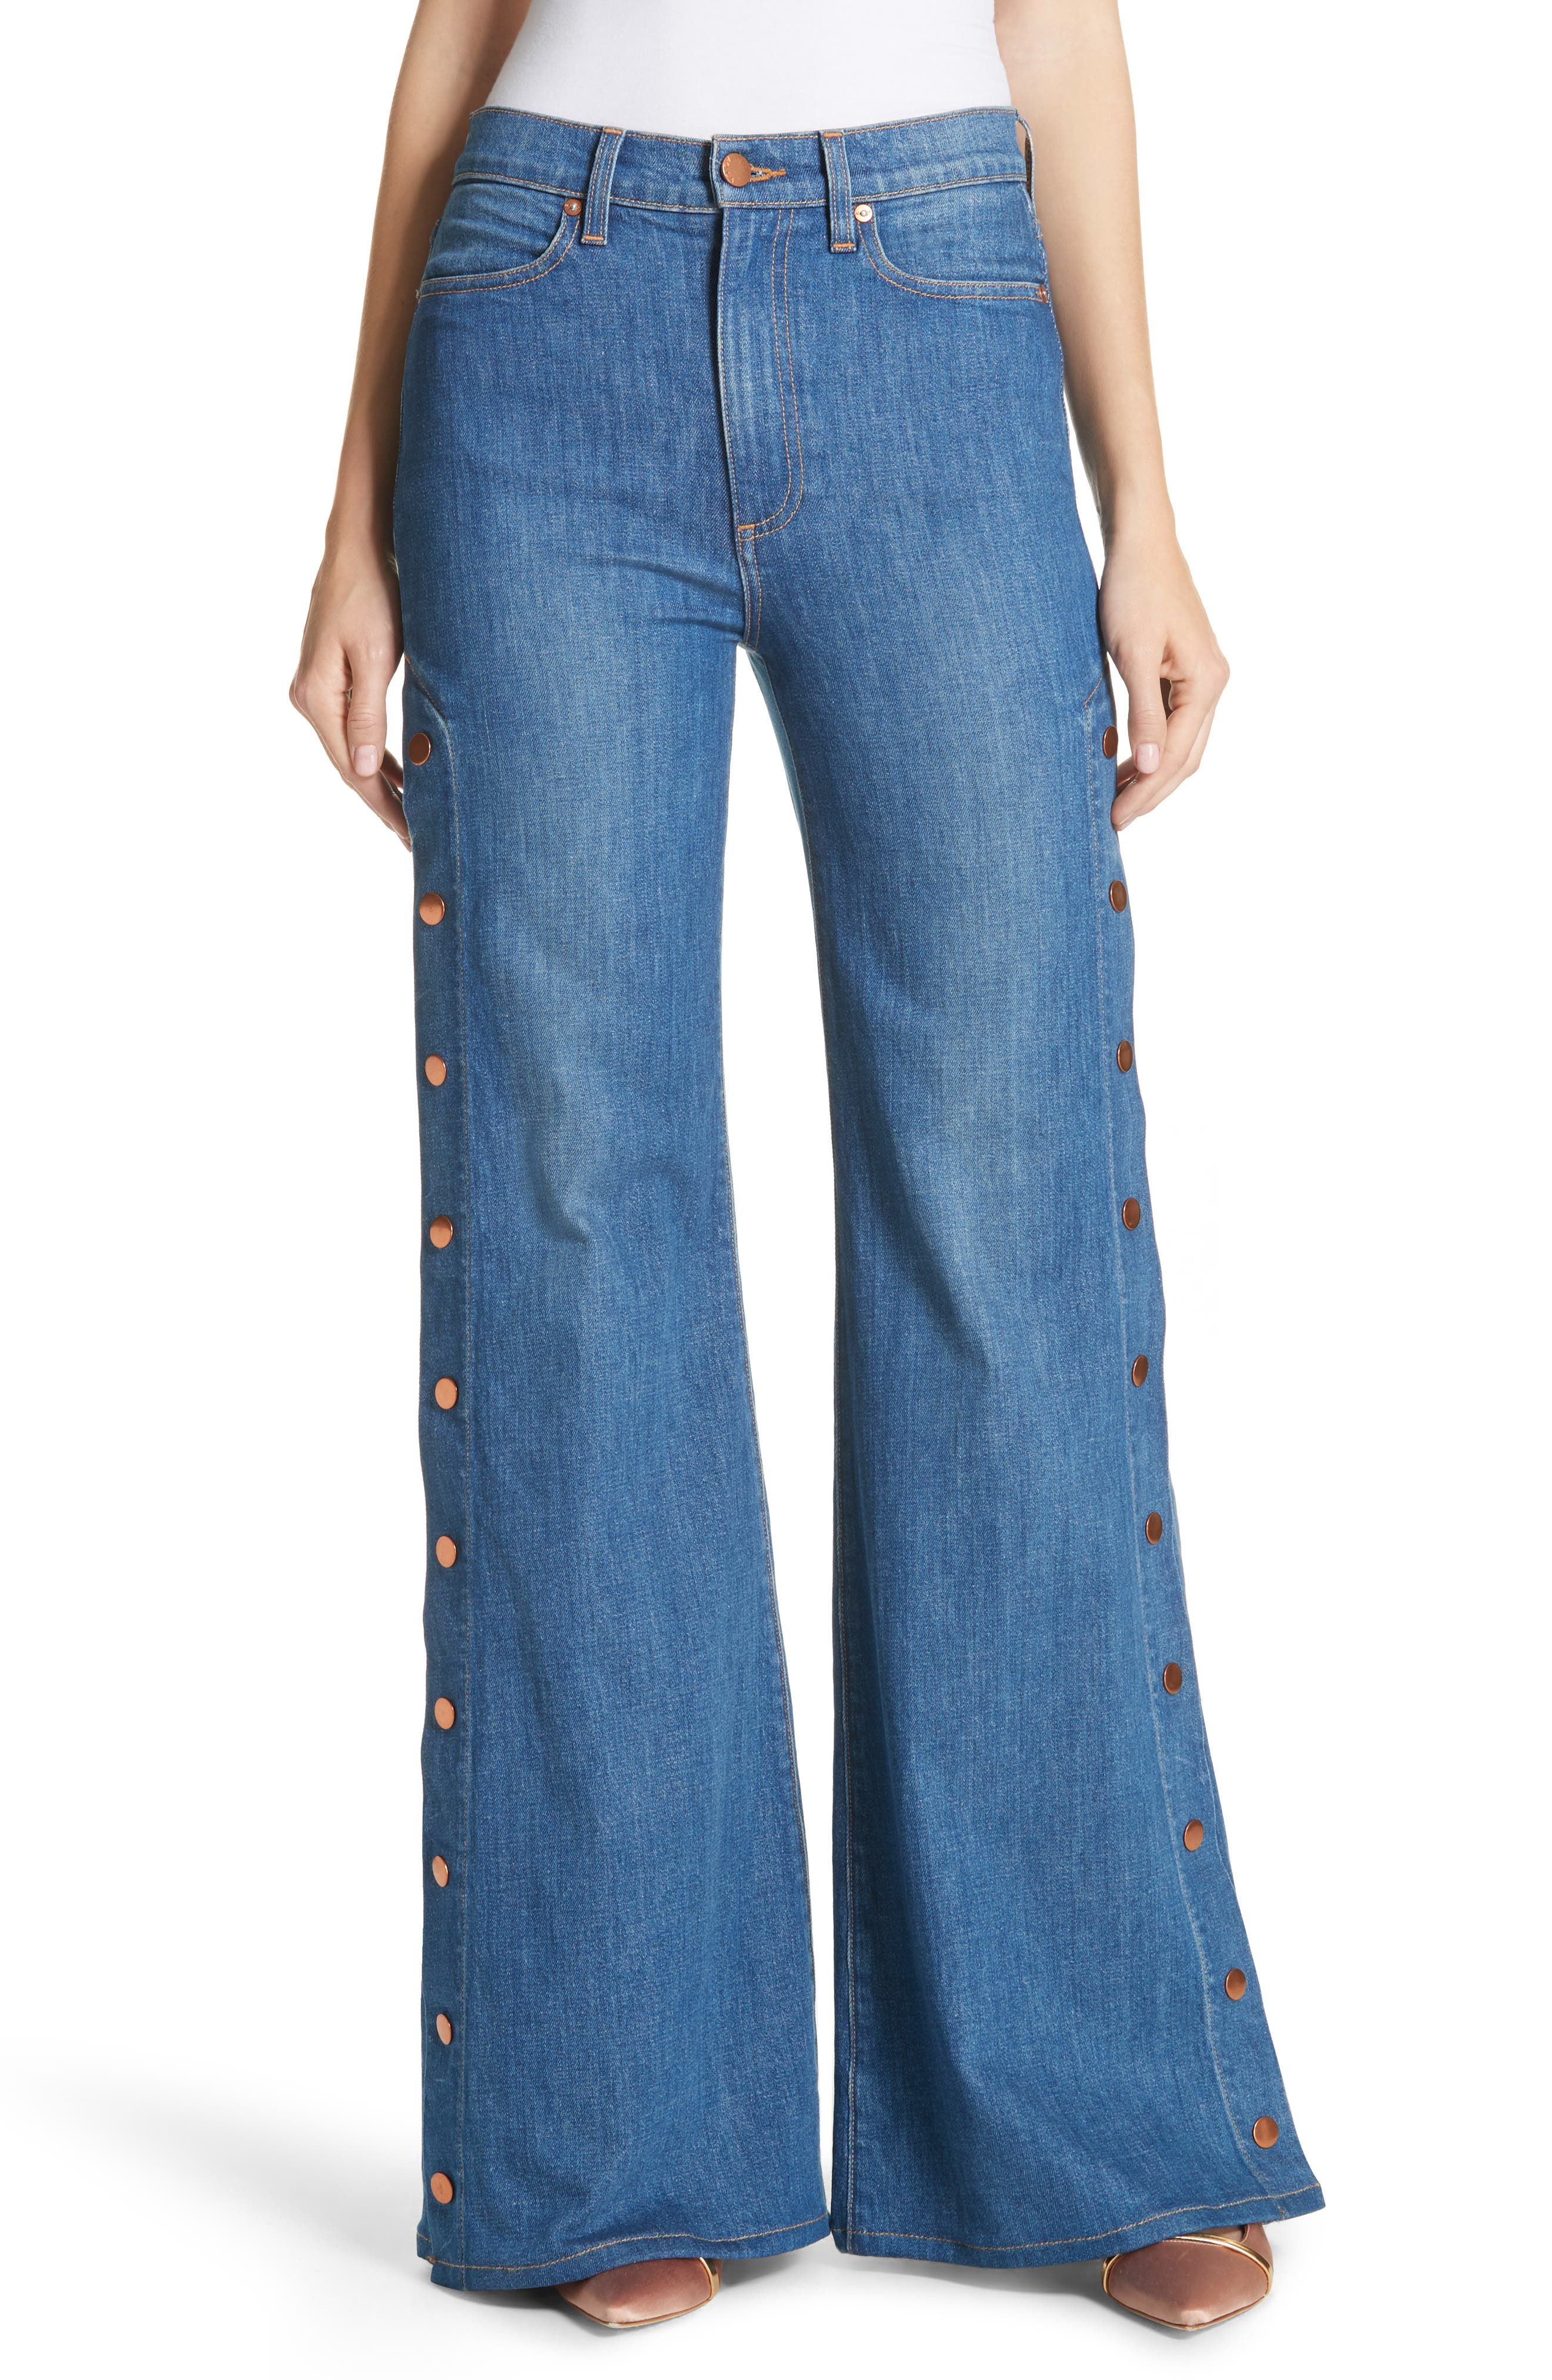 AO.LA Gorgeous Snap Side Flare Leg Jeans,                         Main,                         color, 460